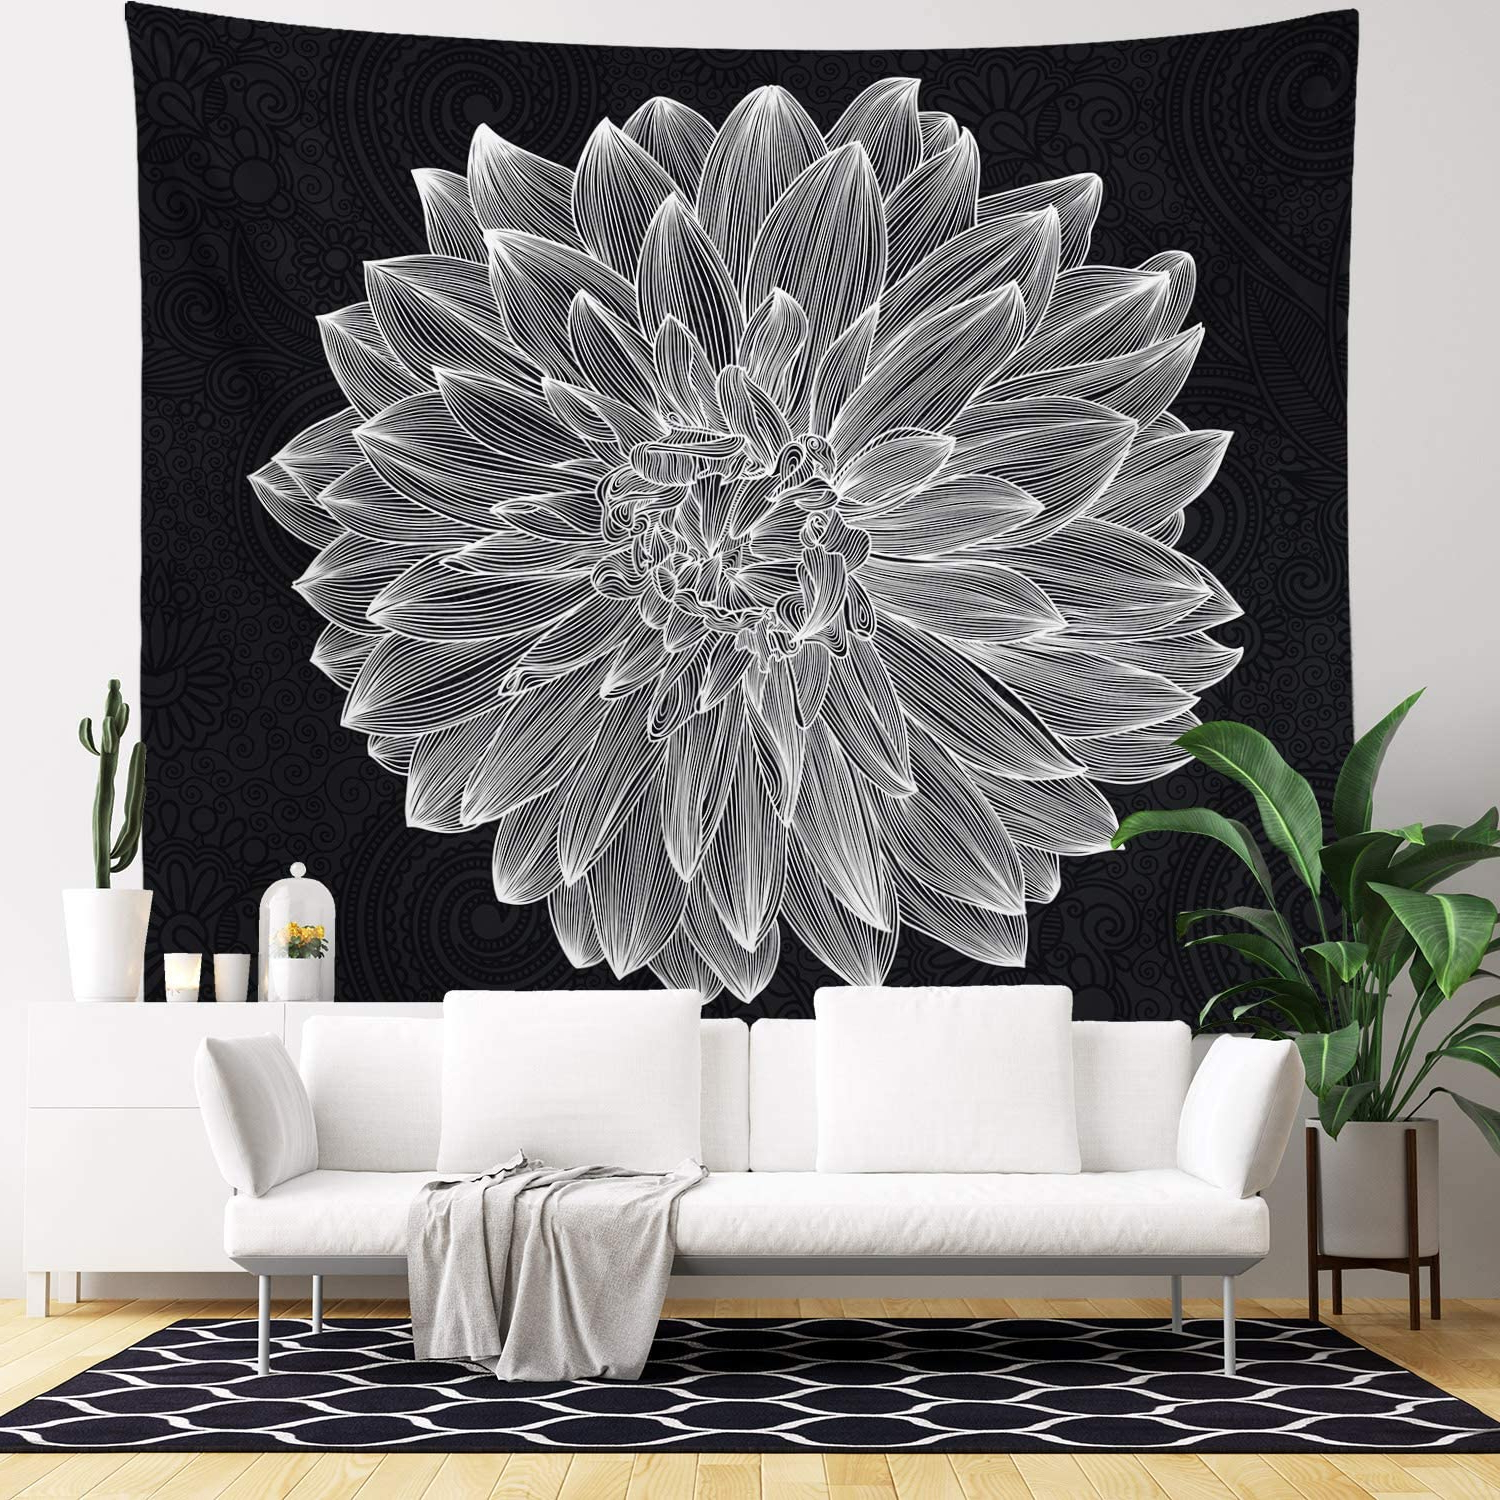 Wall Hanging Tapestry – Living Room Decor – Home Decor – Home Wall Art – Large Tapestries For Bedroom, College & Dorm (black And White Flower In 2019 Blended Fabric Hello Beauty Full Wall Hangings (View 9 of 20)